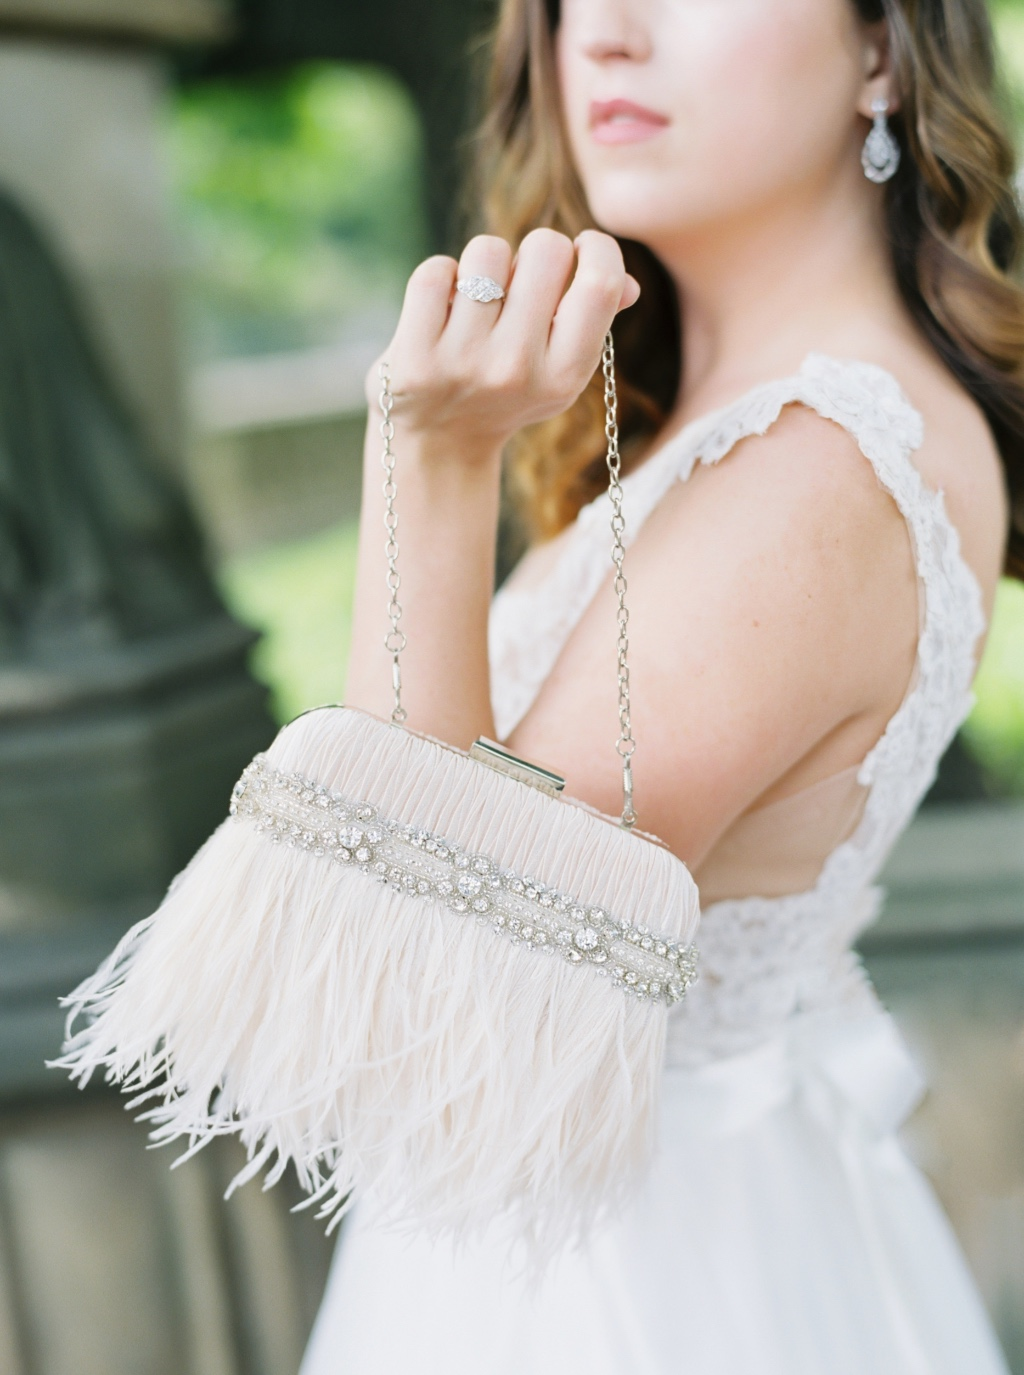 Blush details that are so romantic and dreamy